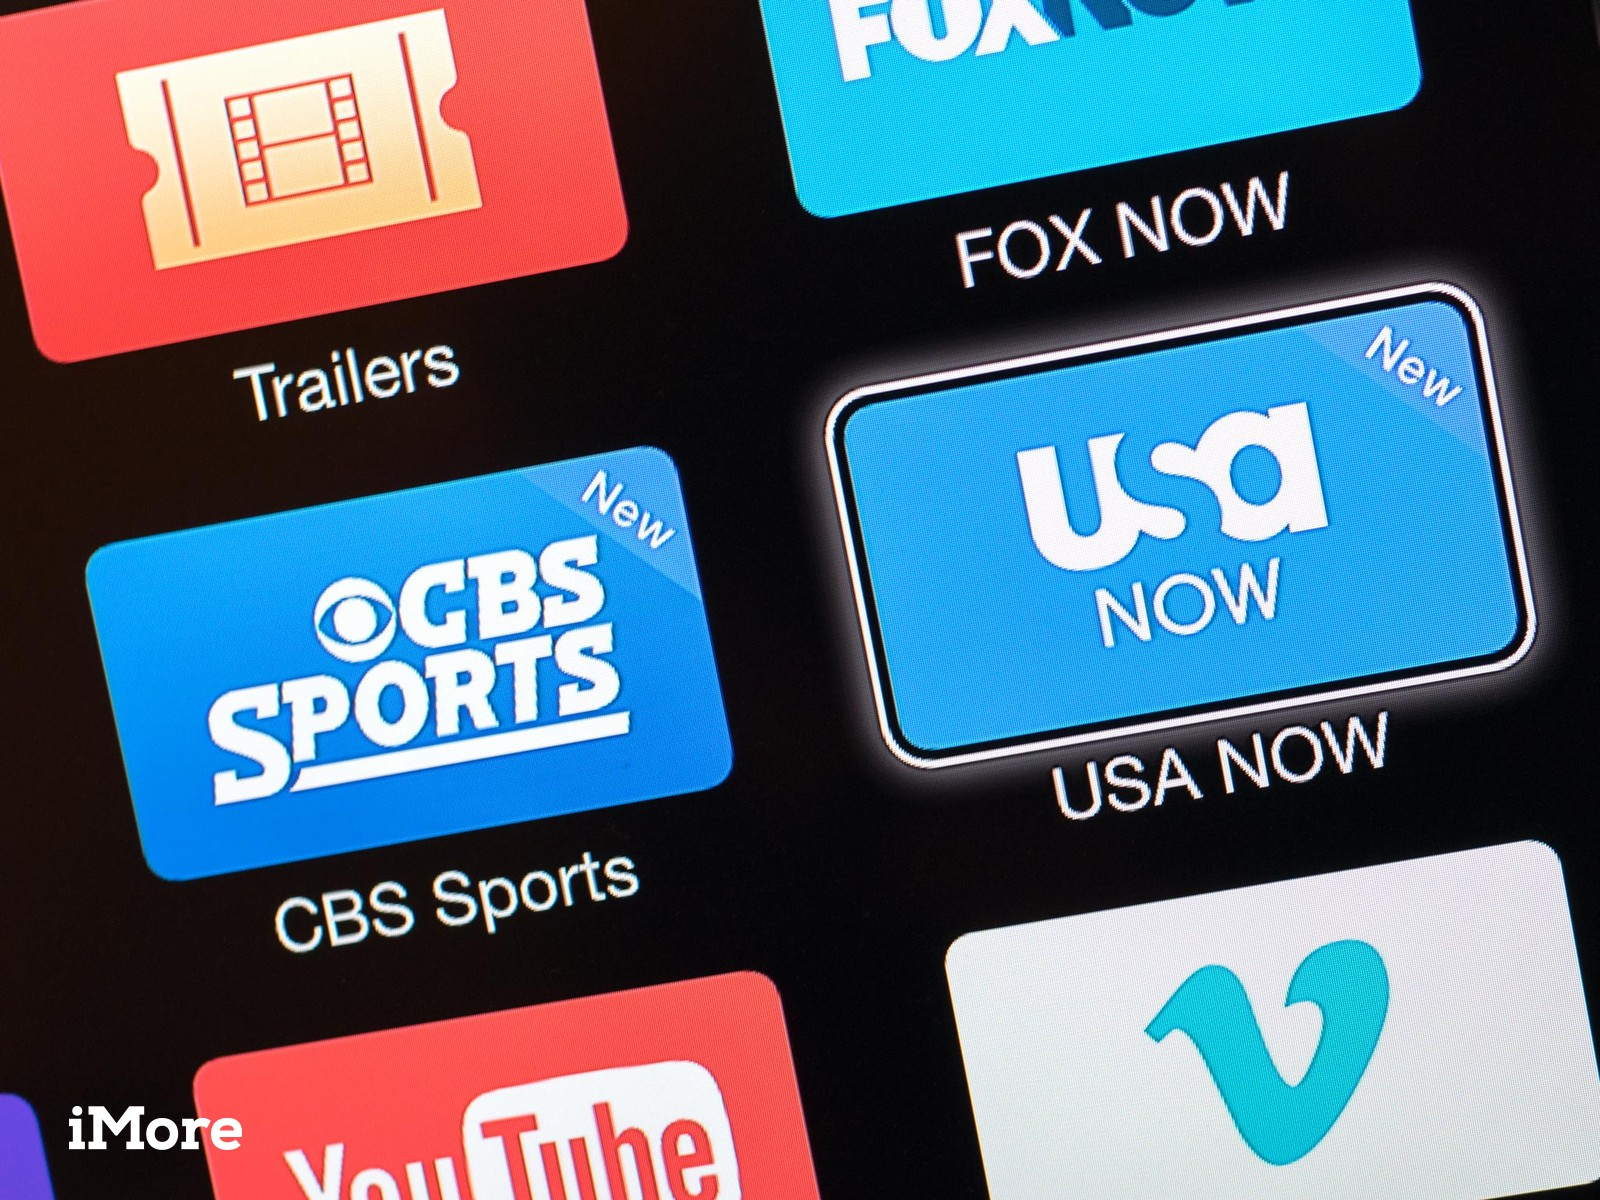 Apple TV adds CBS Sports, USA NOW to its channel lineup